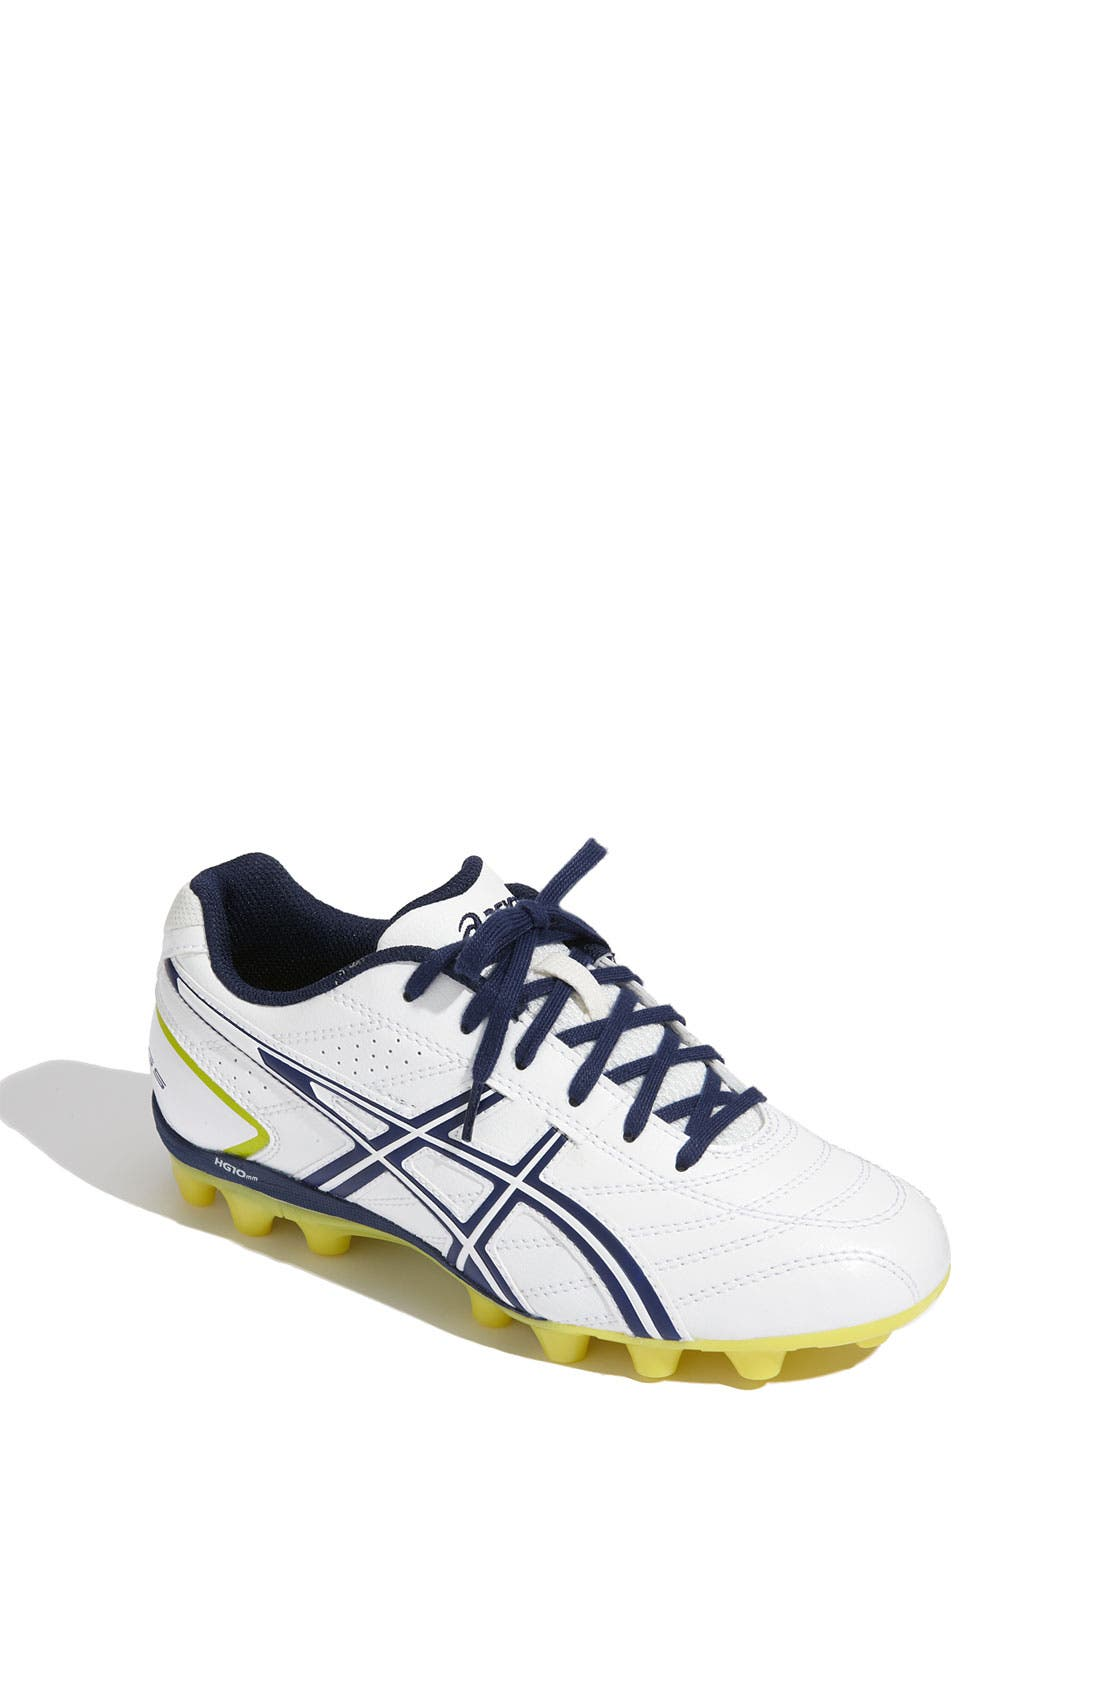 Alternate Image 1 Selected - ASICS® 'Lethal' Soccer Cleat (Little Kid & Big Kid)